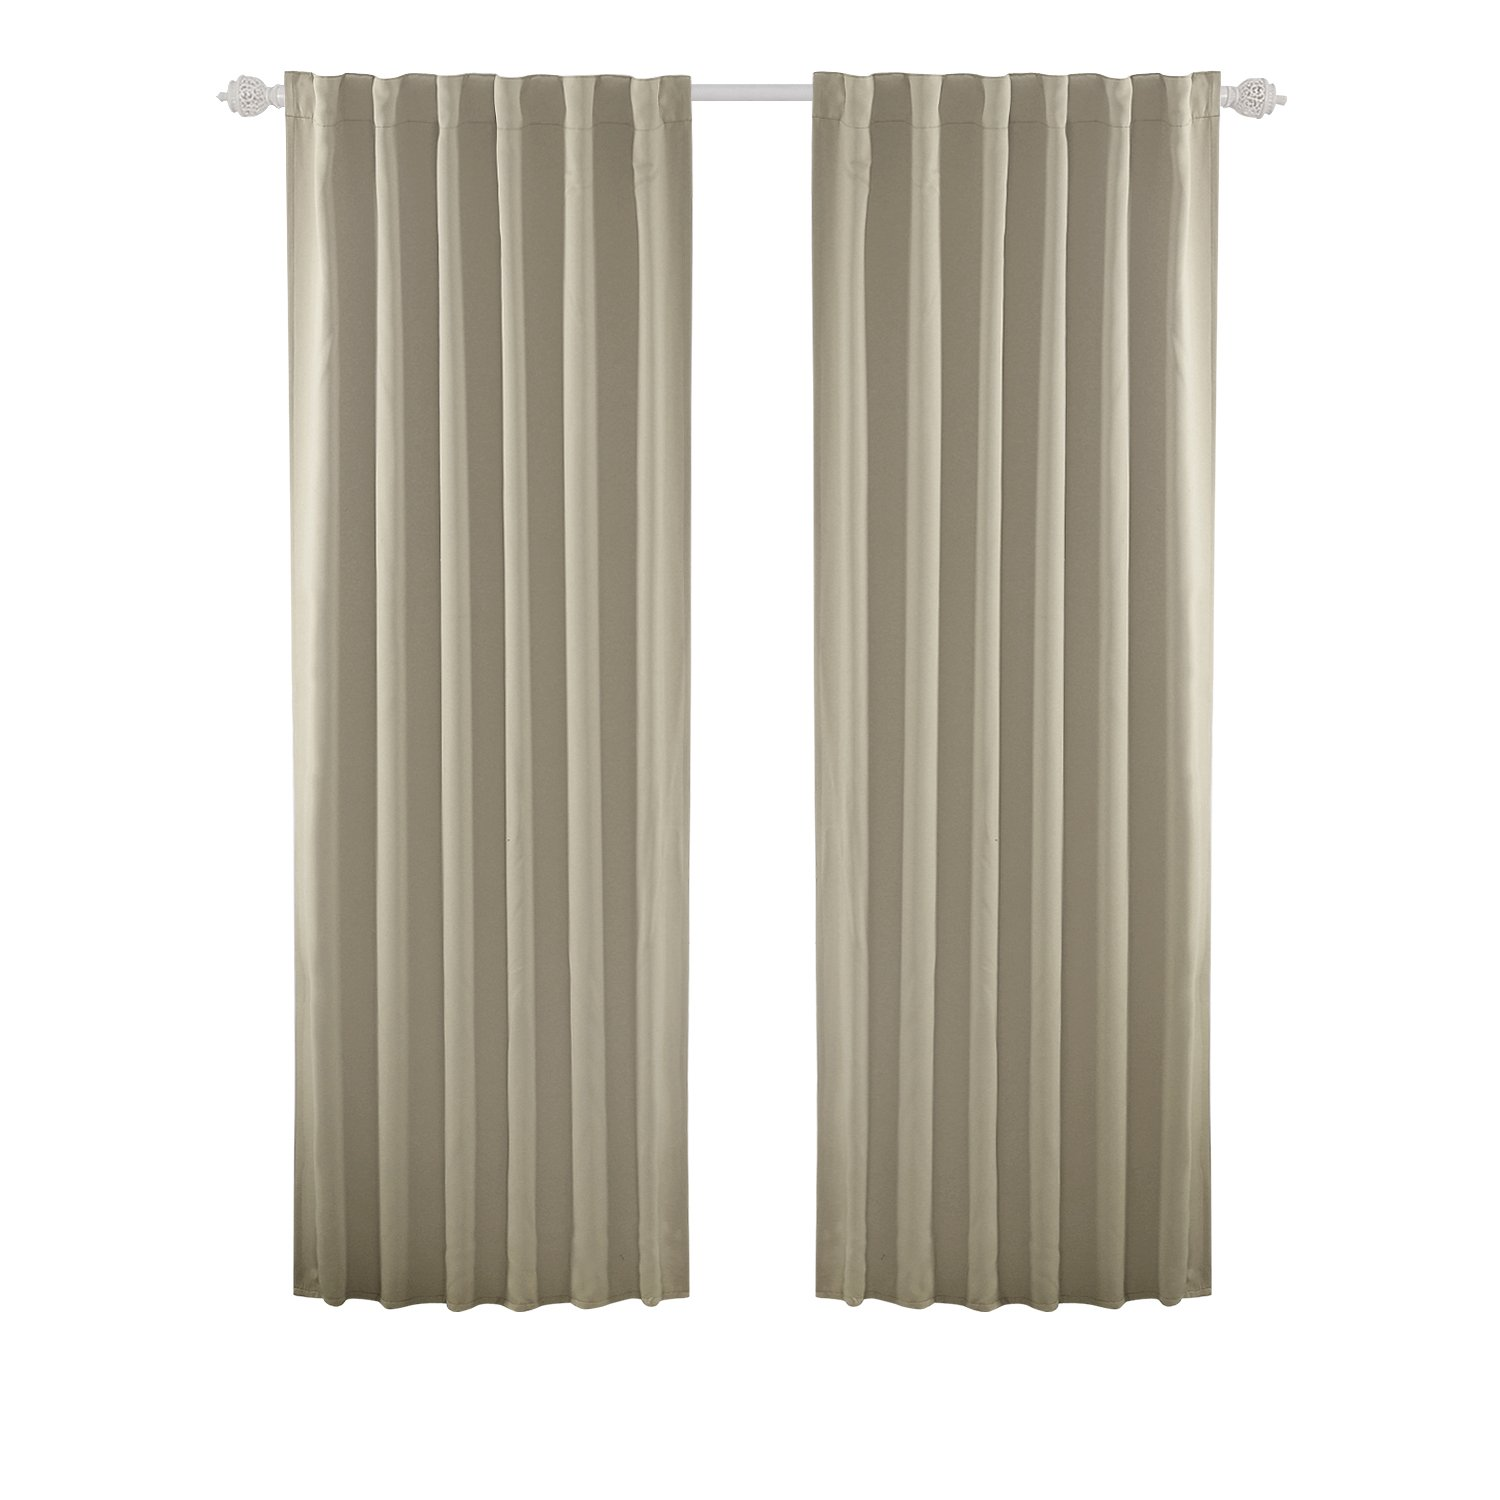 Deconovo Solid Thermal Insulated Curtain Rod Pocket and Back Tab Blackout Curtains for Bedroom 52x84 Inch Beige 2 Panels